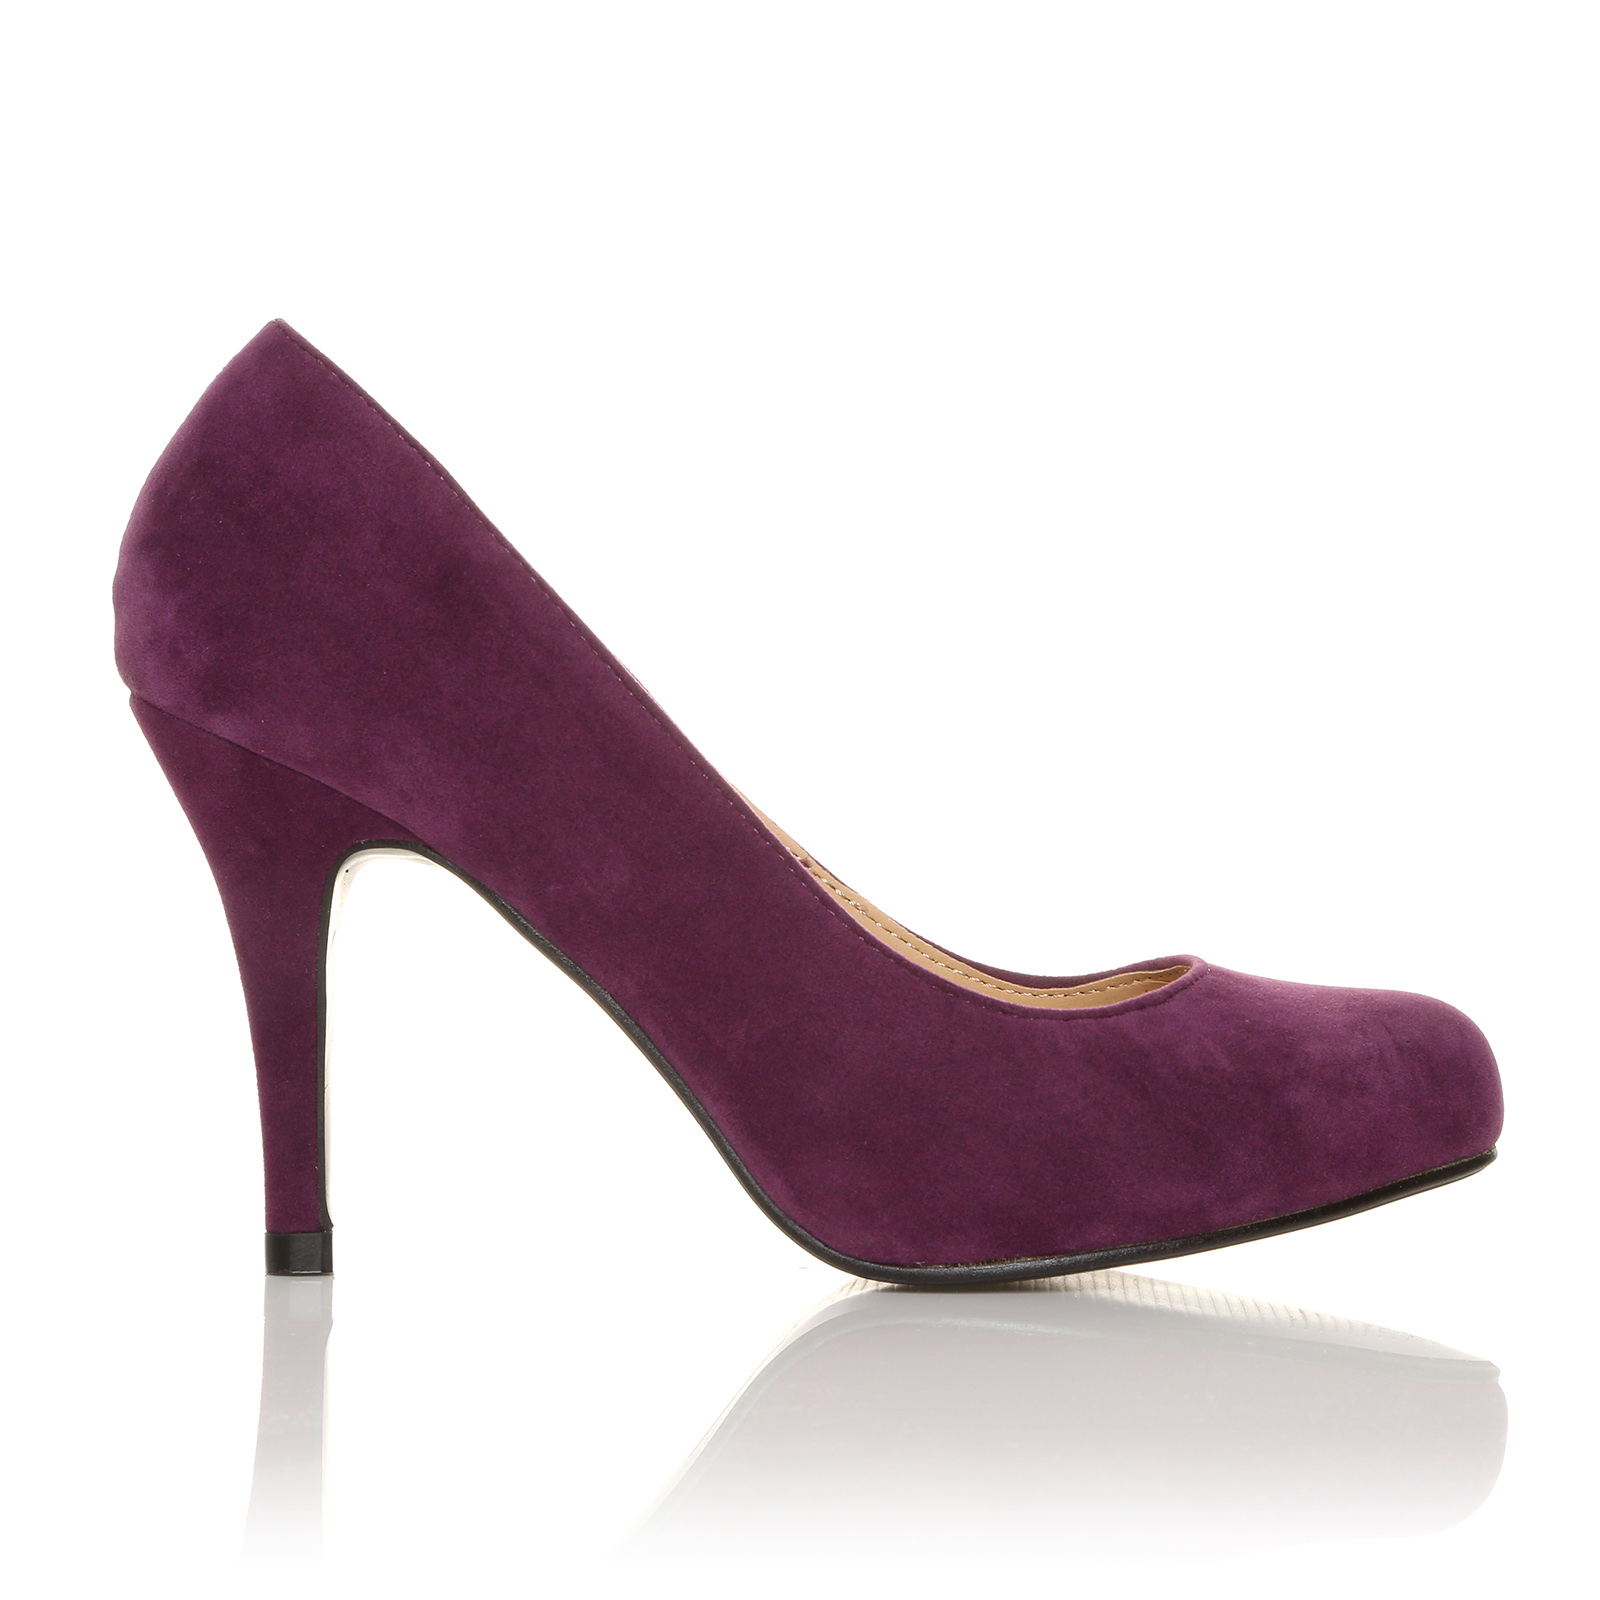 Step out in a pair of court shoes. Slingbacks and kitten heels are perfect for formal occasions alongside designs with bow details and ankle straps. Suede and patent leather designs add impact to tailored trousers and suit dresses for the office.